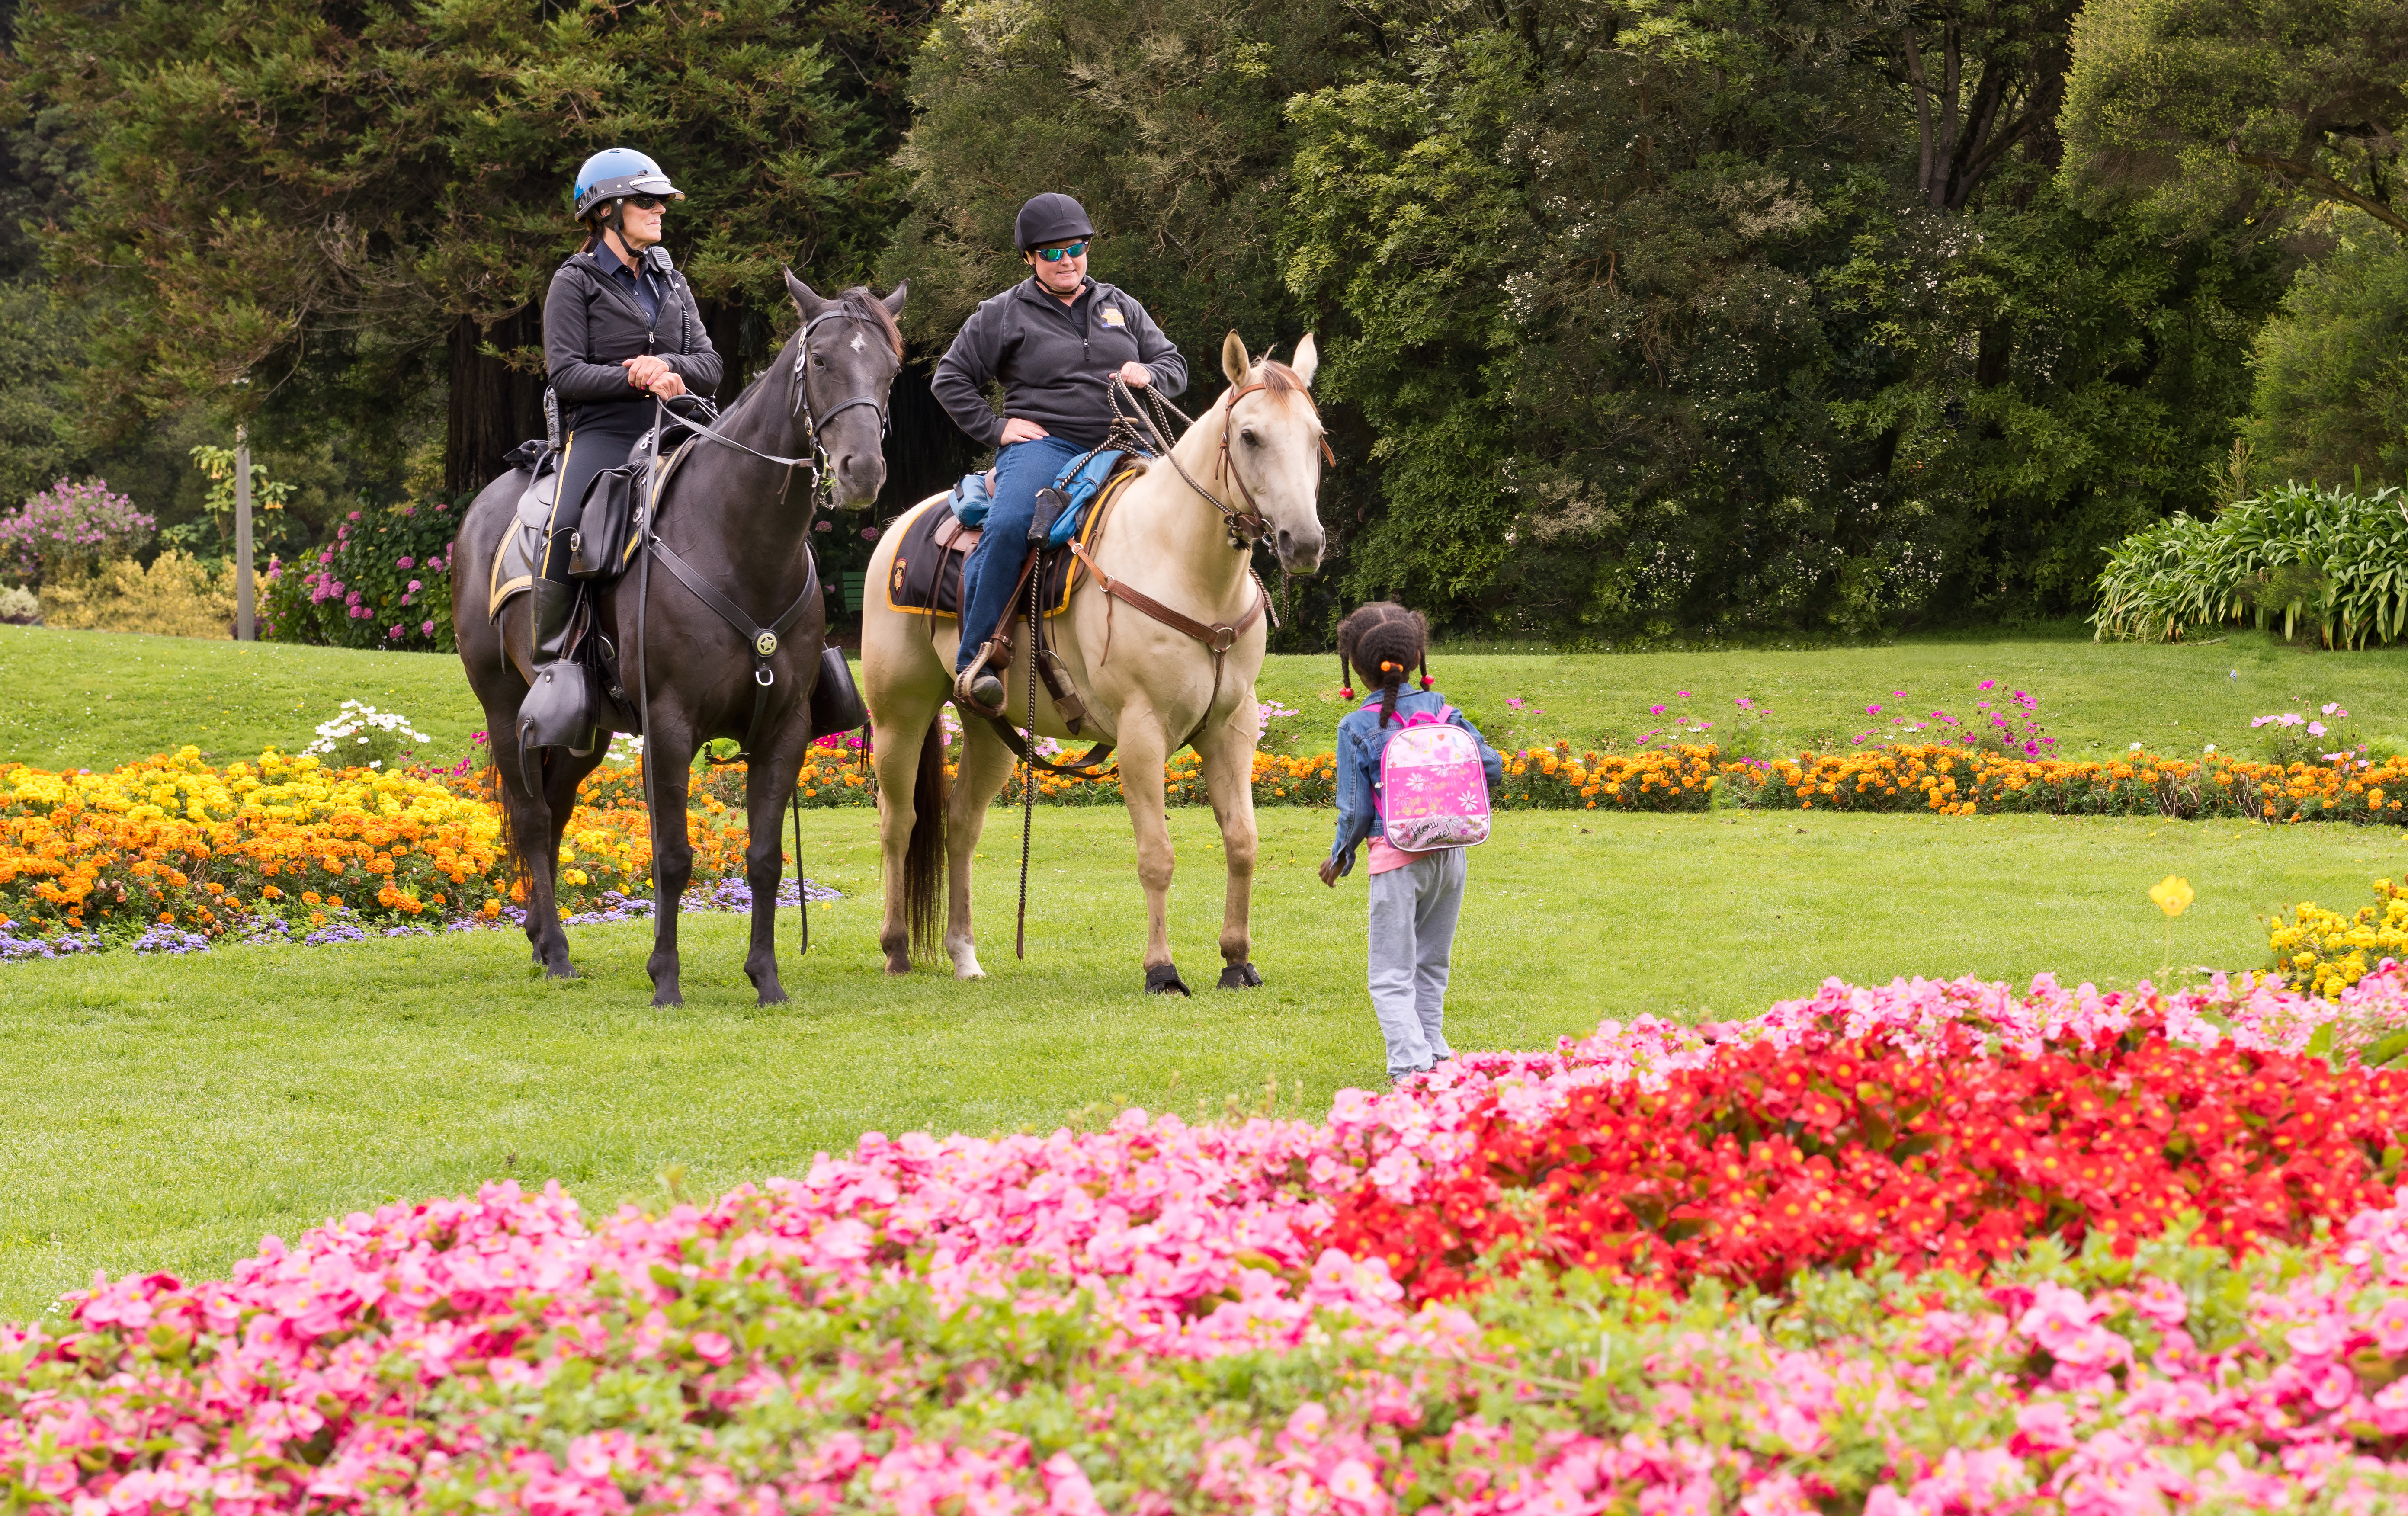 A little girl chats with police officers on horses in a green park.